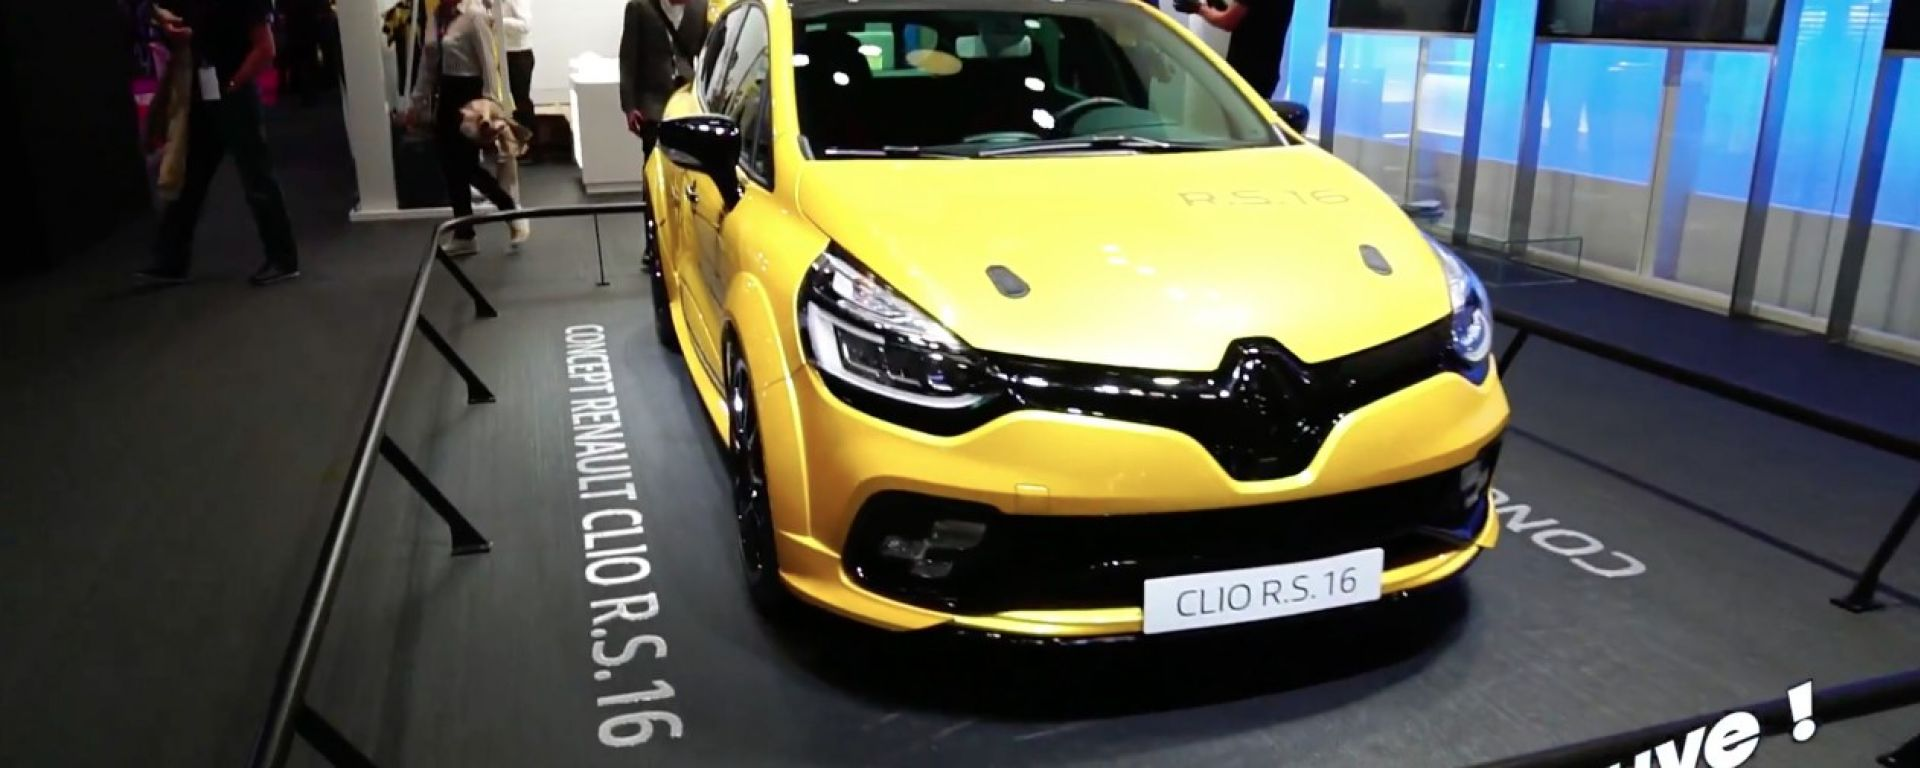 Live Parigi 2016: Renault Clio R.S. 16 in video